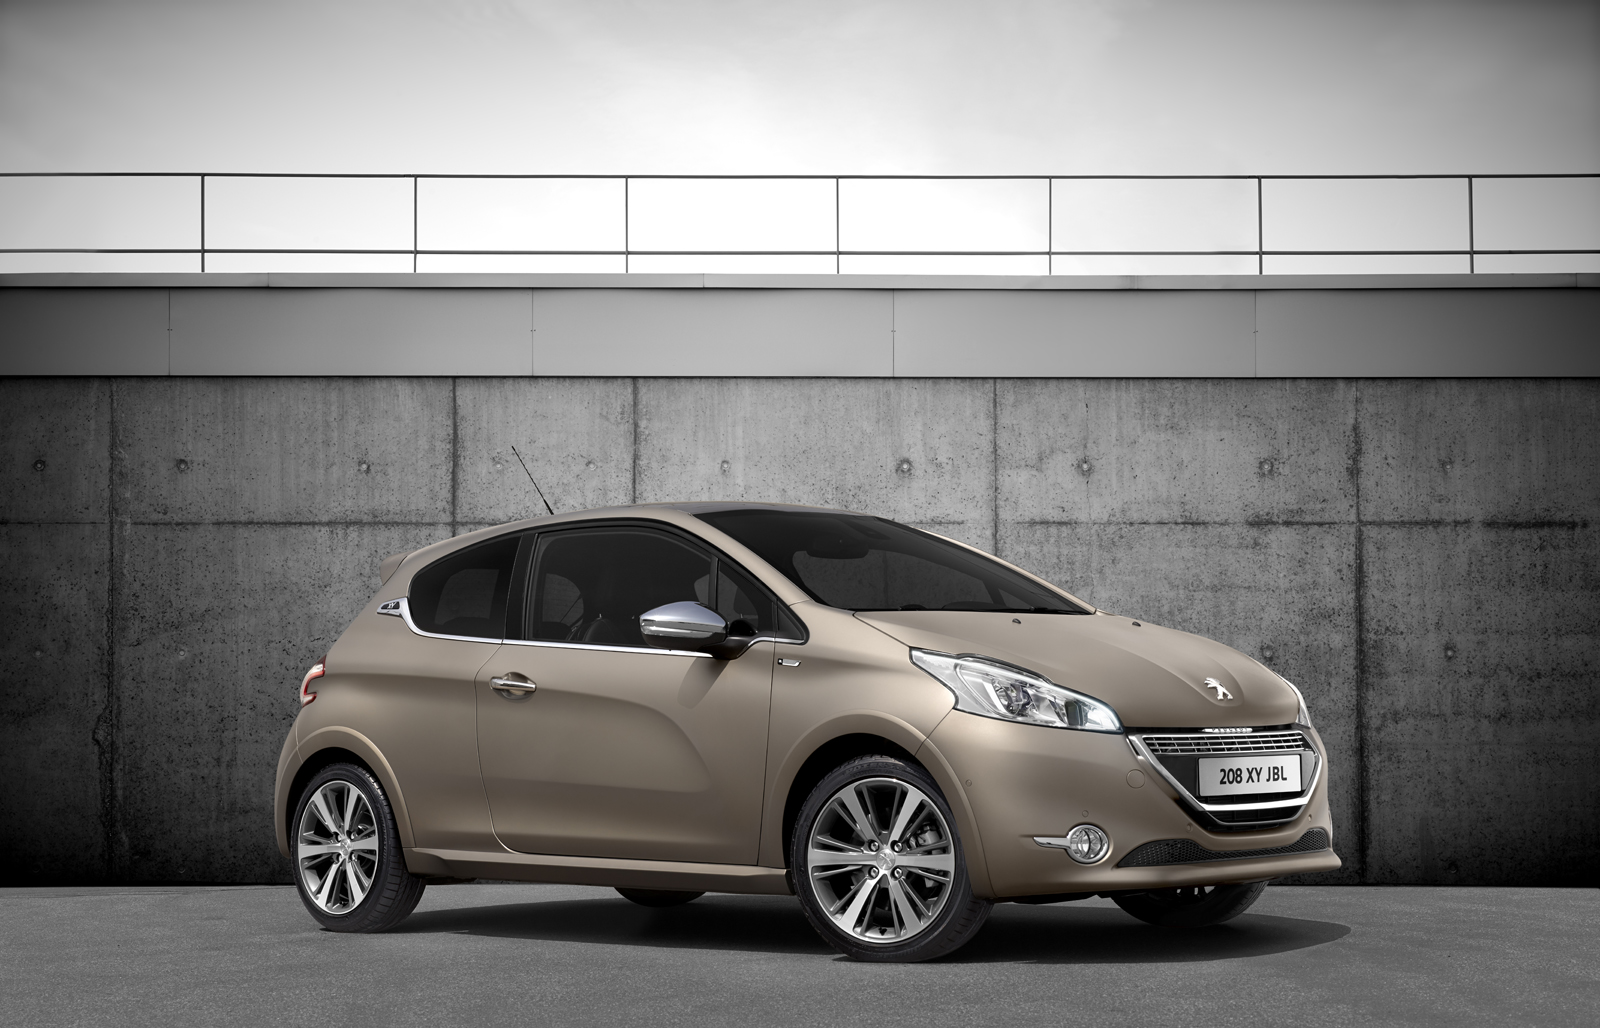 peugeot 208 xy jbl unveiled aimed at music lovers who love satin beige autoevolution. Black Bedroom Furniture Sets. Home Design Ideas